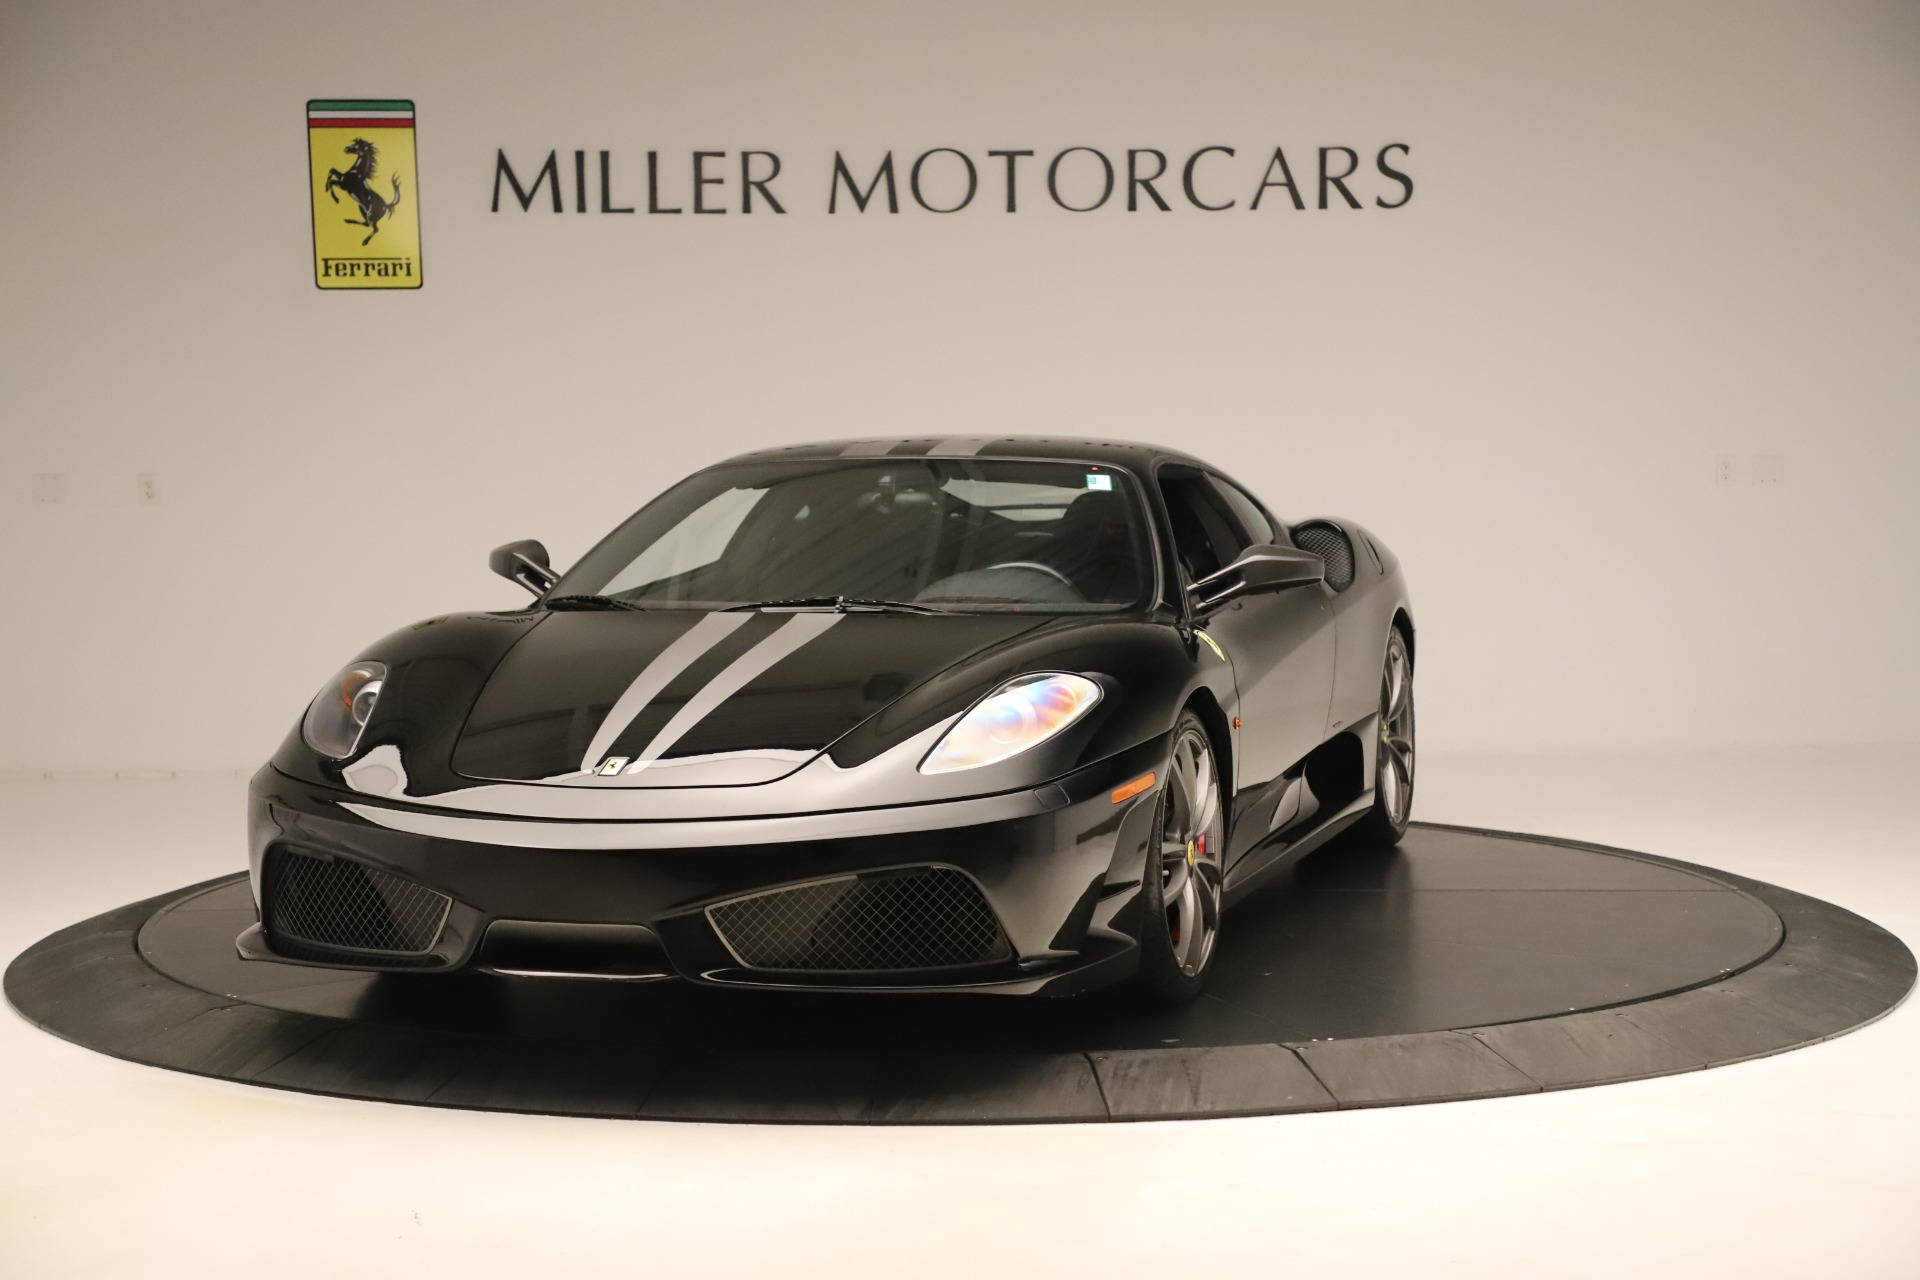 Used 2008 Ferrari F430 Scuderia for sale Sold at Maserati of Westport in Westport CT 06880 1